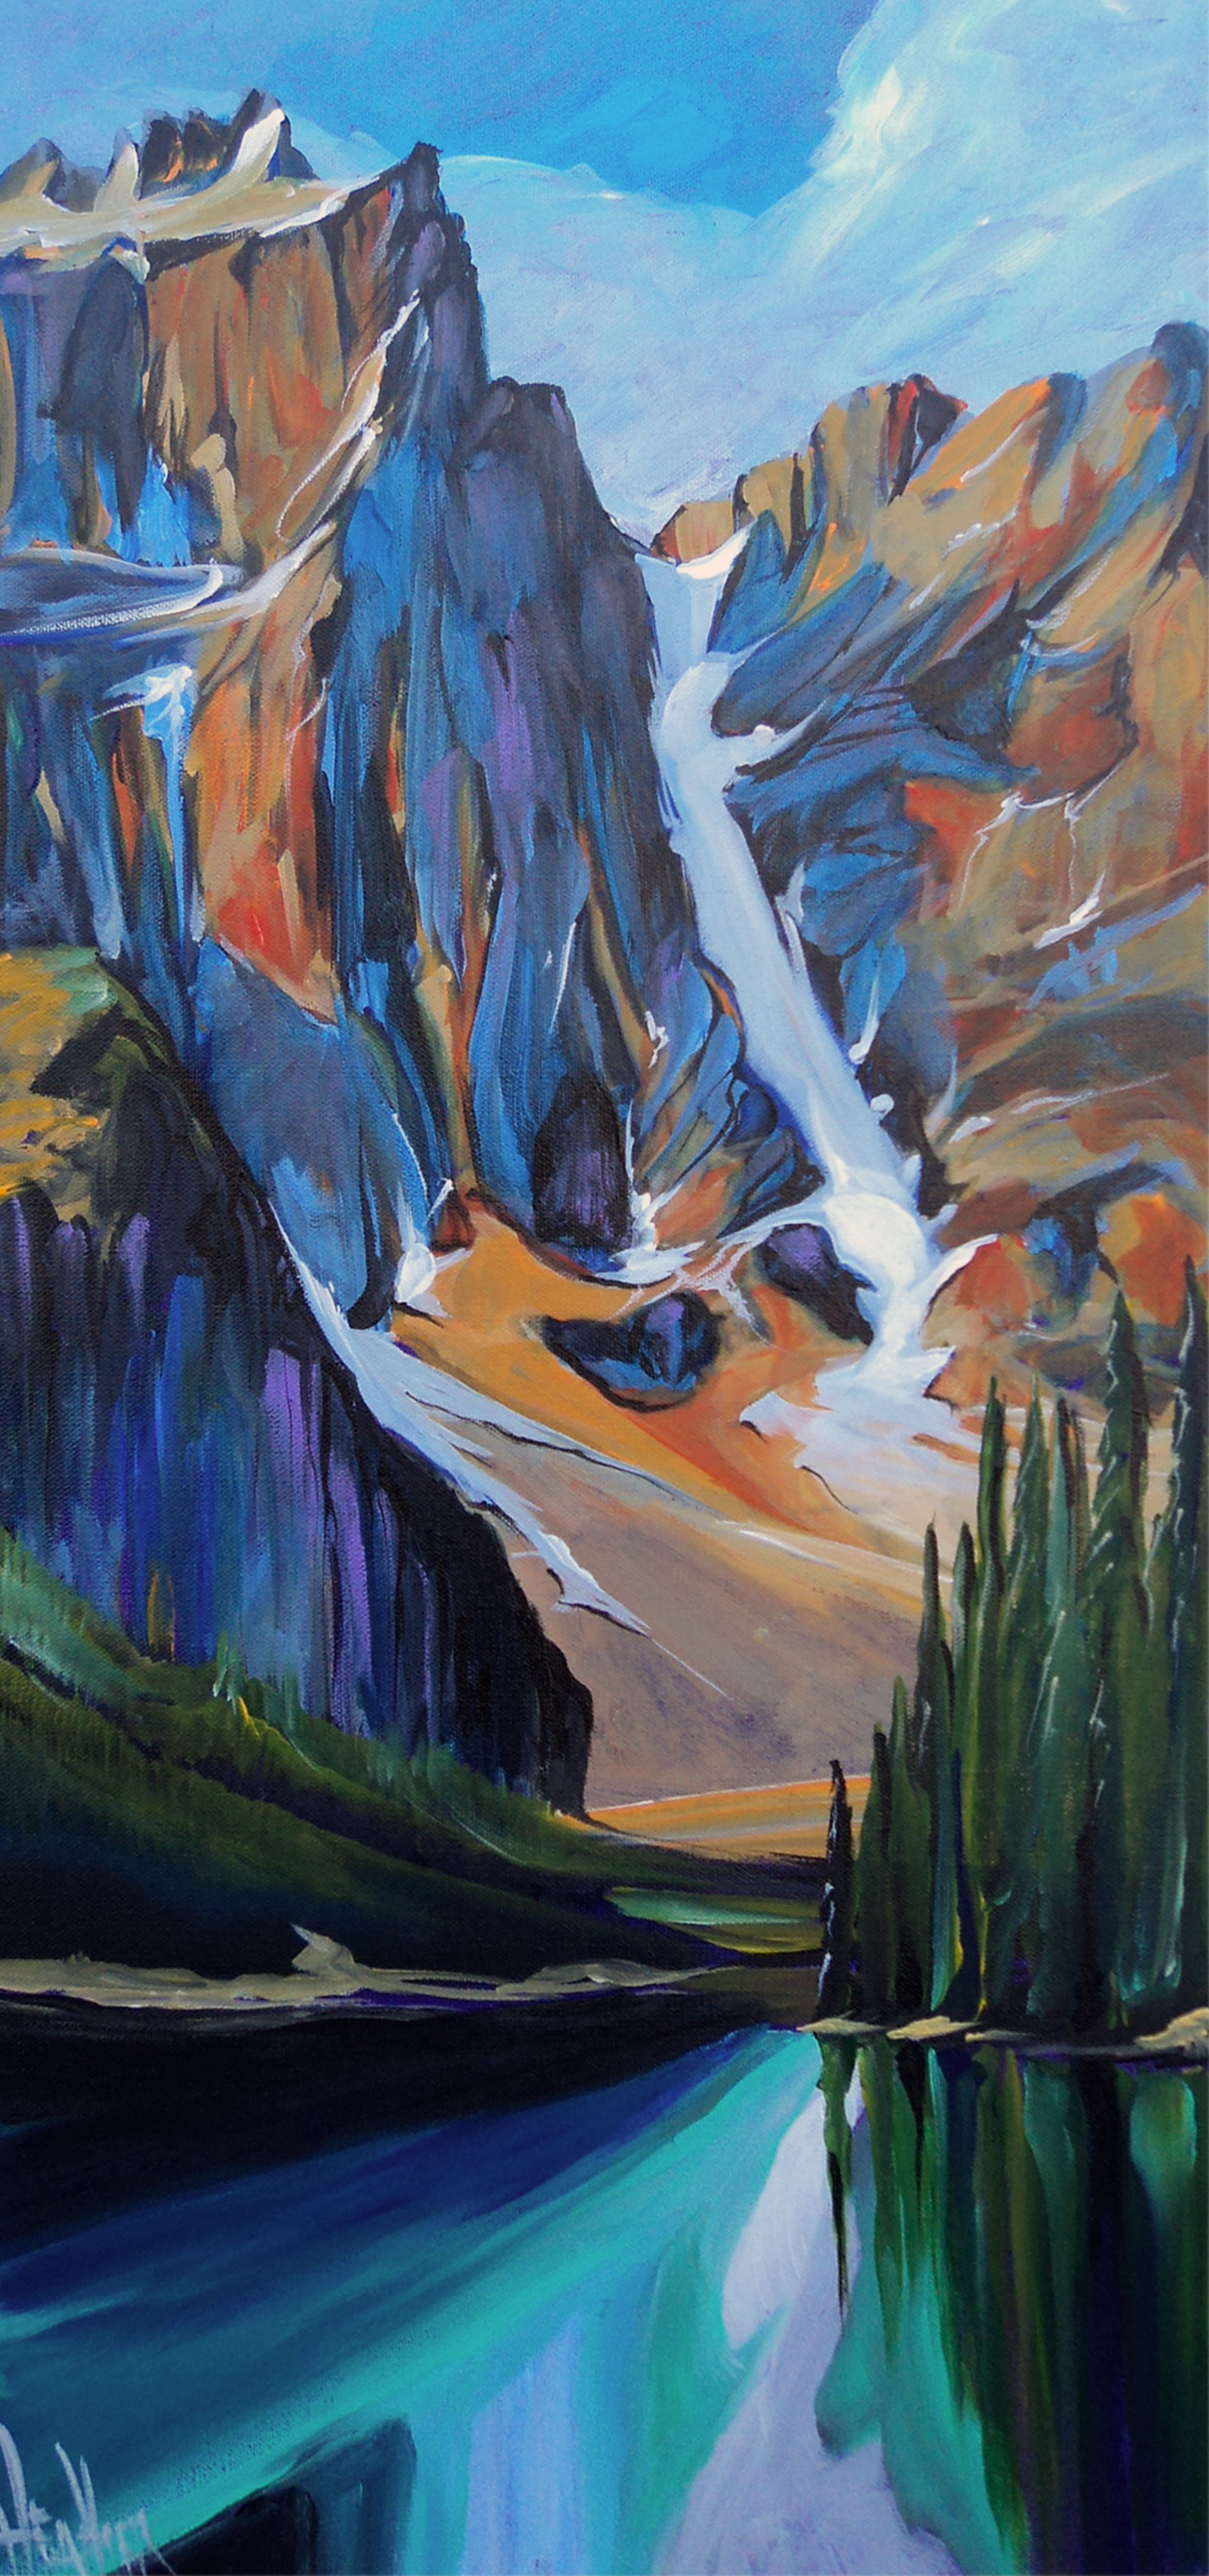 Moraine Eve 15 x 30 Donated